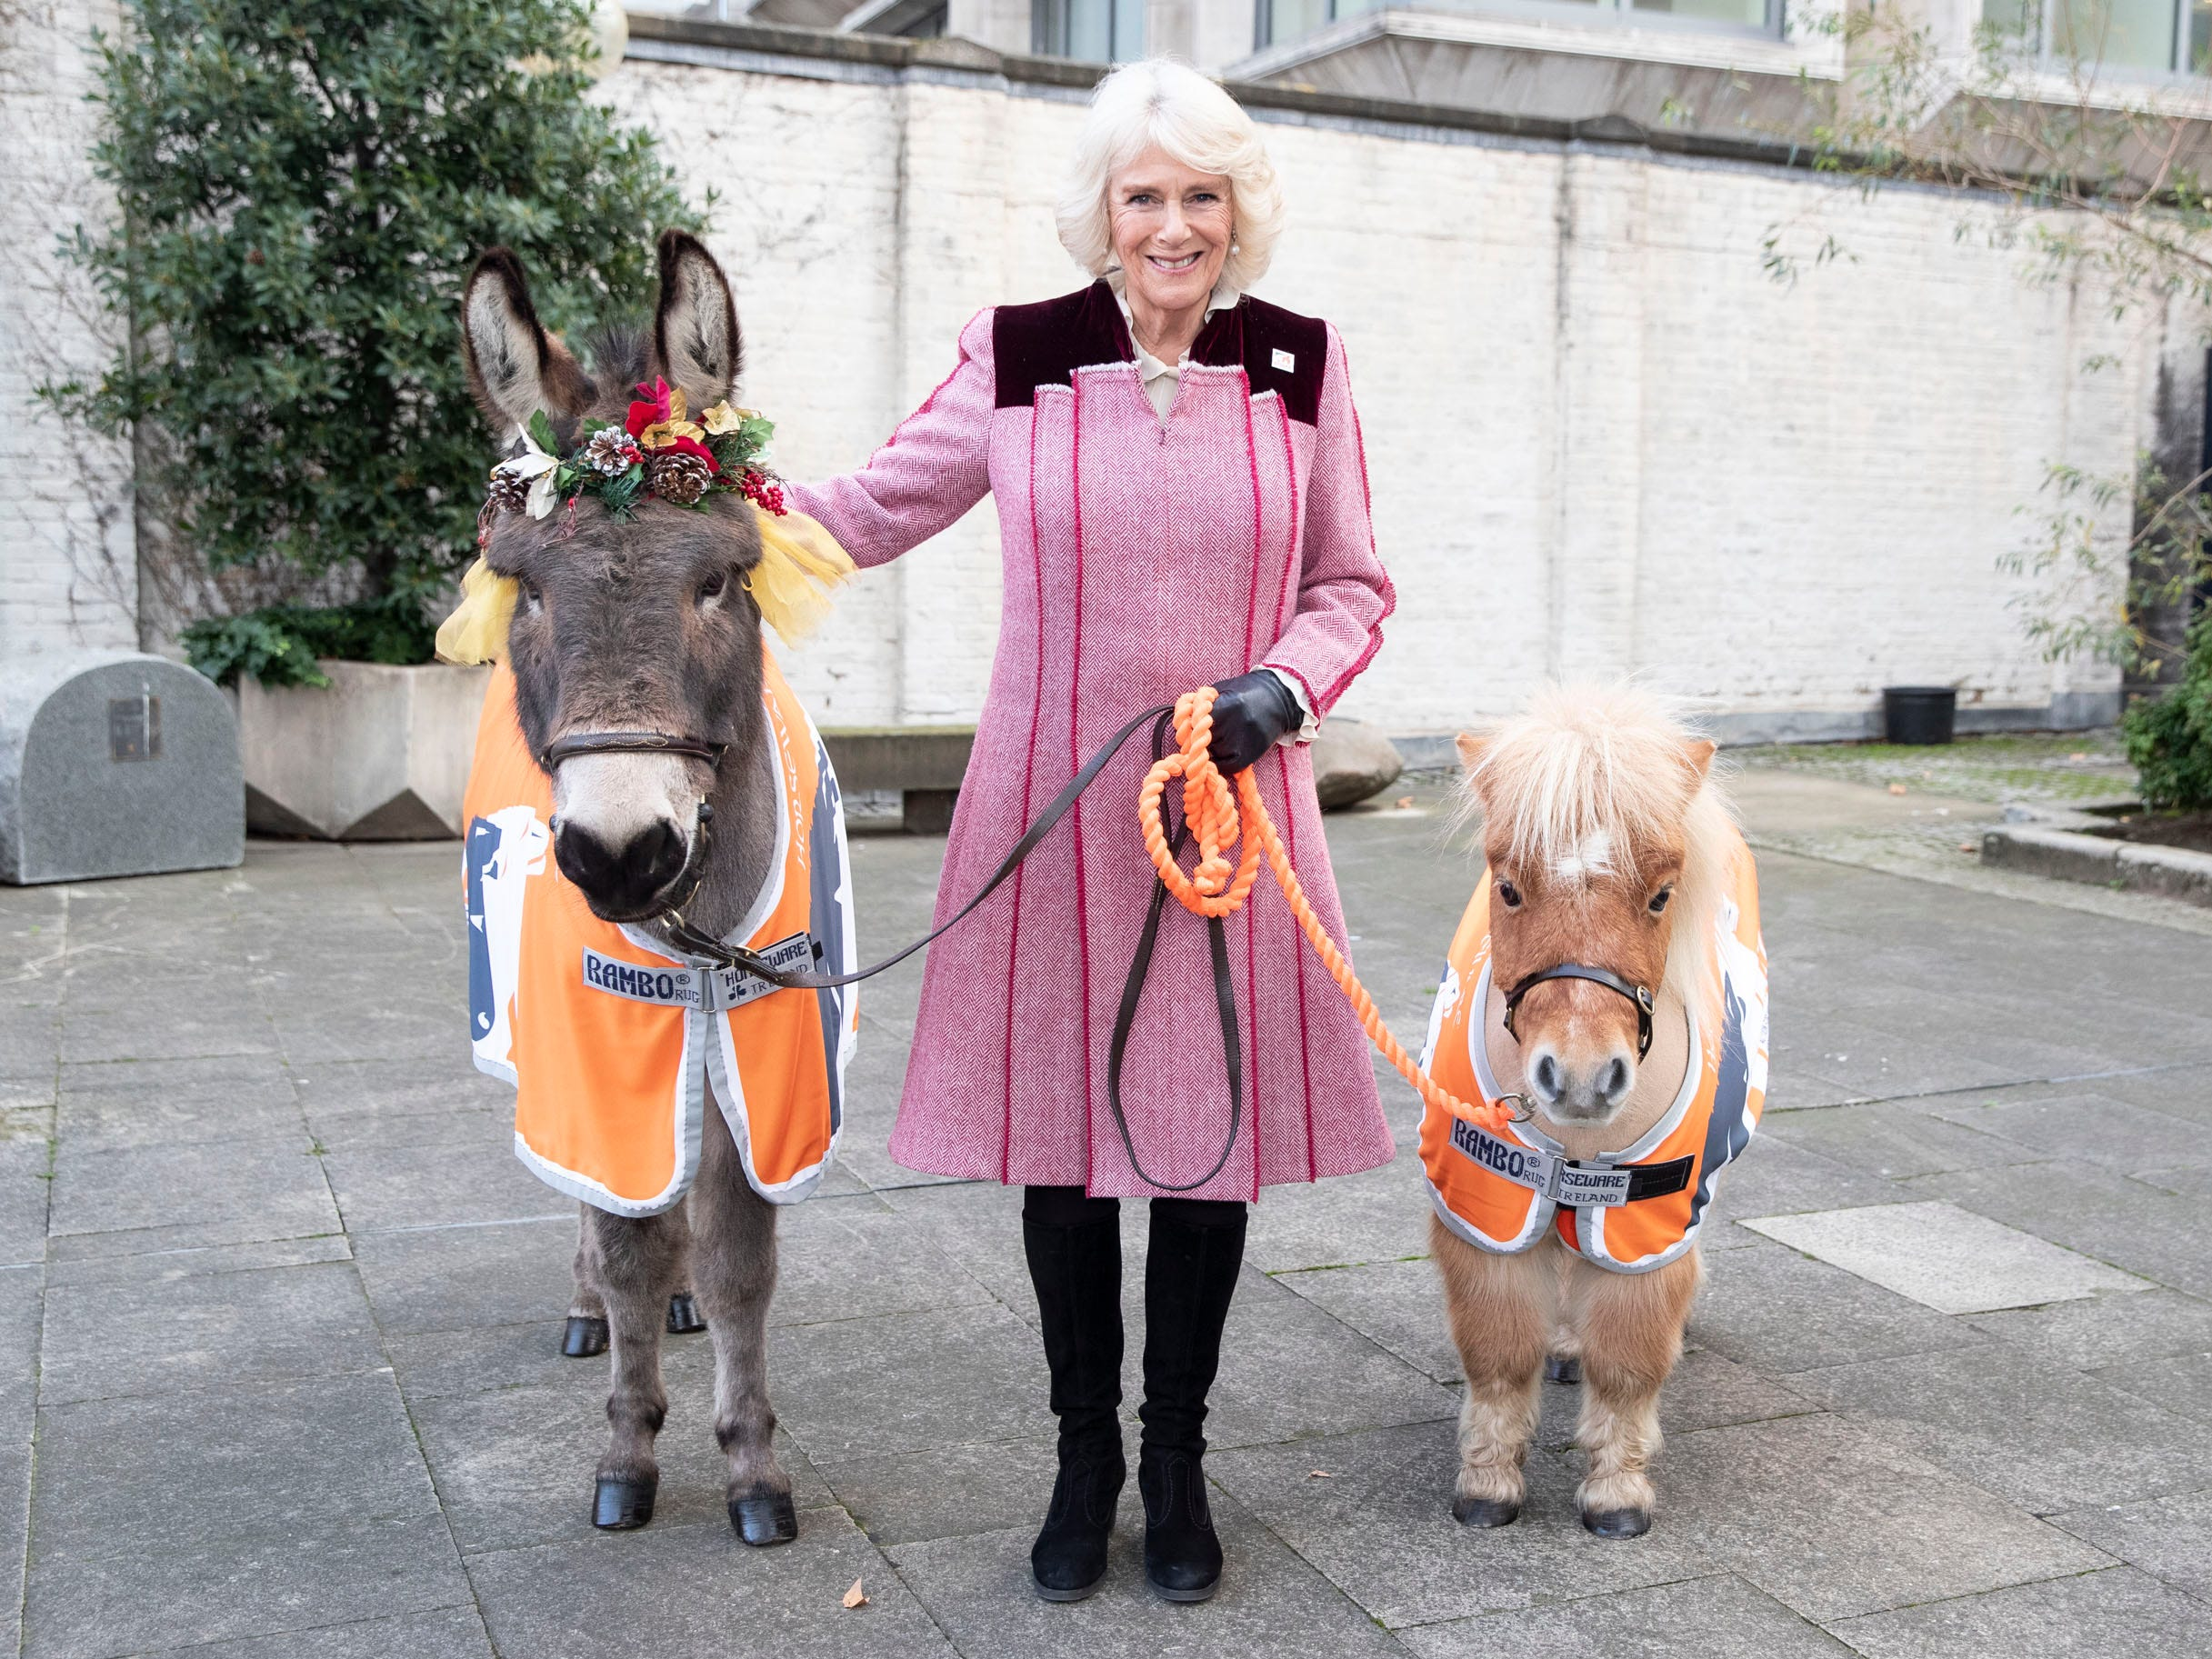 Camilla, Duchess of Cornwall, meets Ollie the Donkey and Harry the Mini Shetland Pony at a charity event at the Guards Chapel on Dec. 12, 2018 in London. The duchess attended a carol service for the animal welfare charity Brooke Action for Working Horses and Donkeys at the Guards chapel in Westminster.